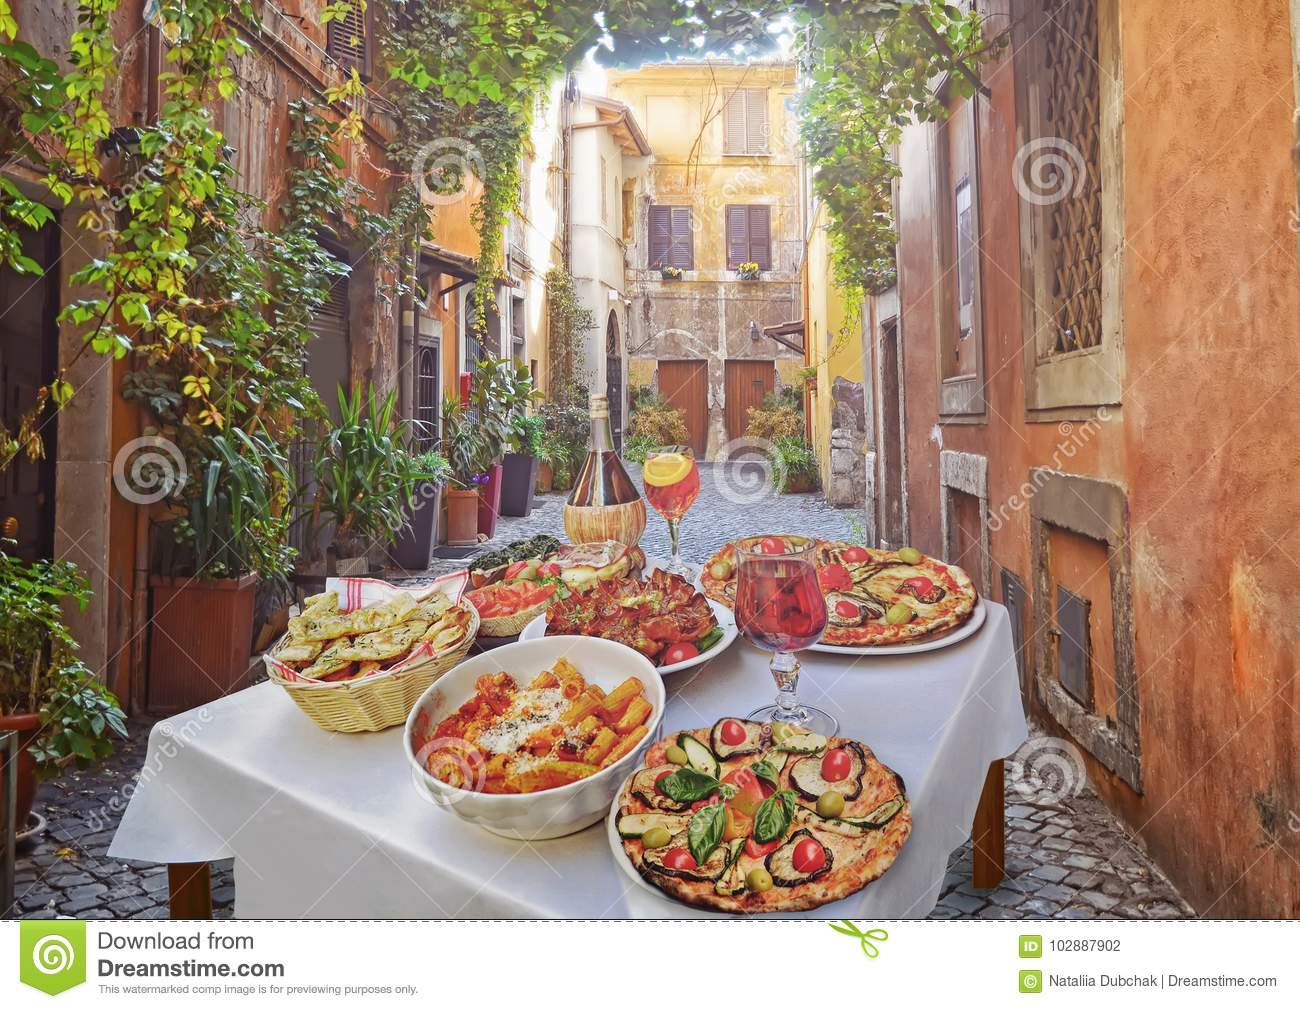 Pasta , pizza and homemade food arrangement in a restaurant Rome